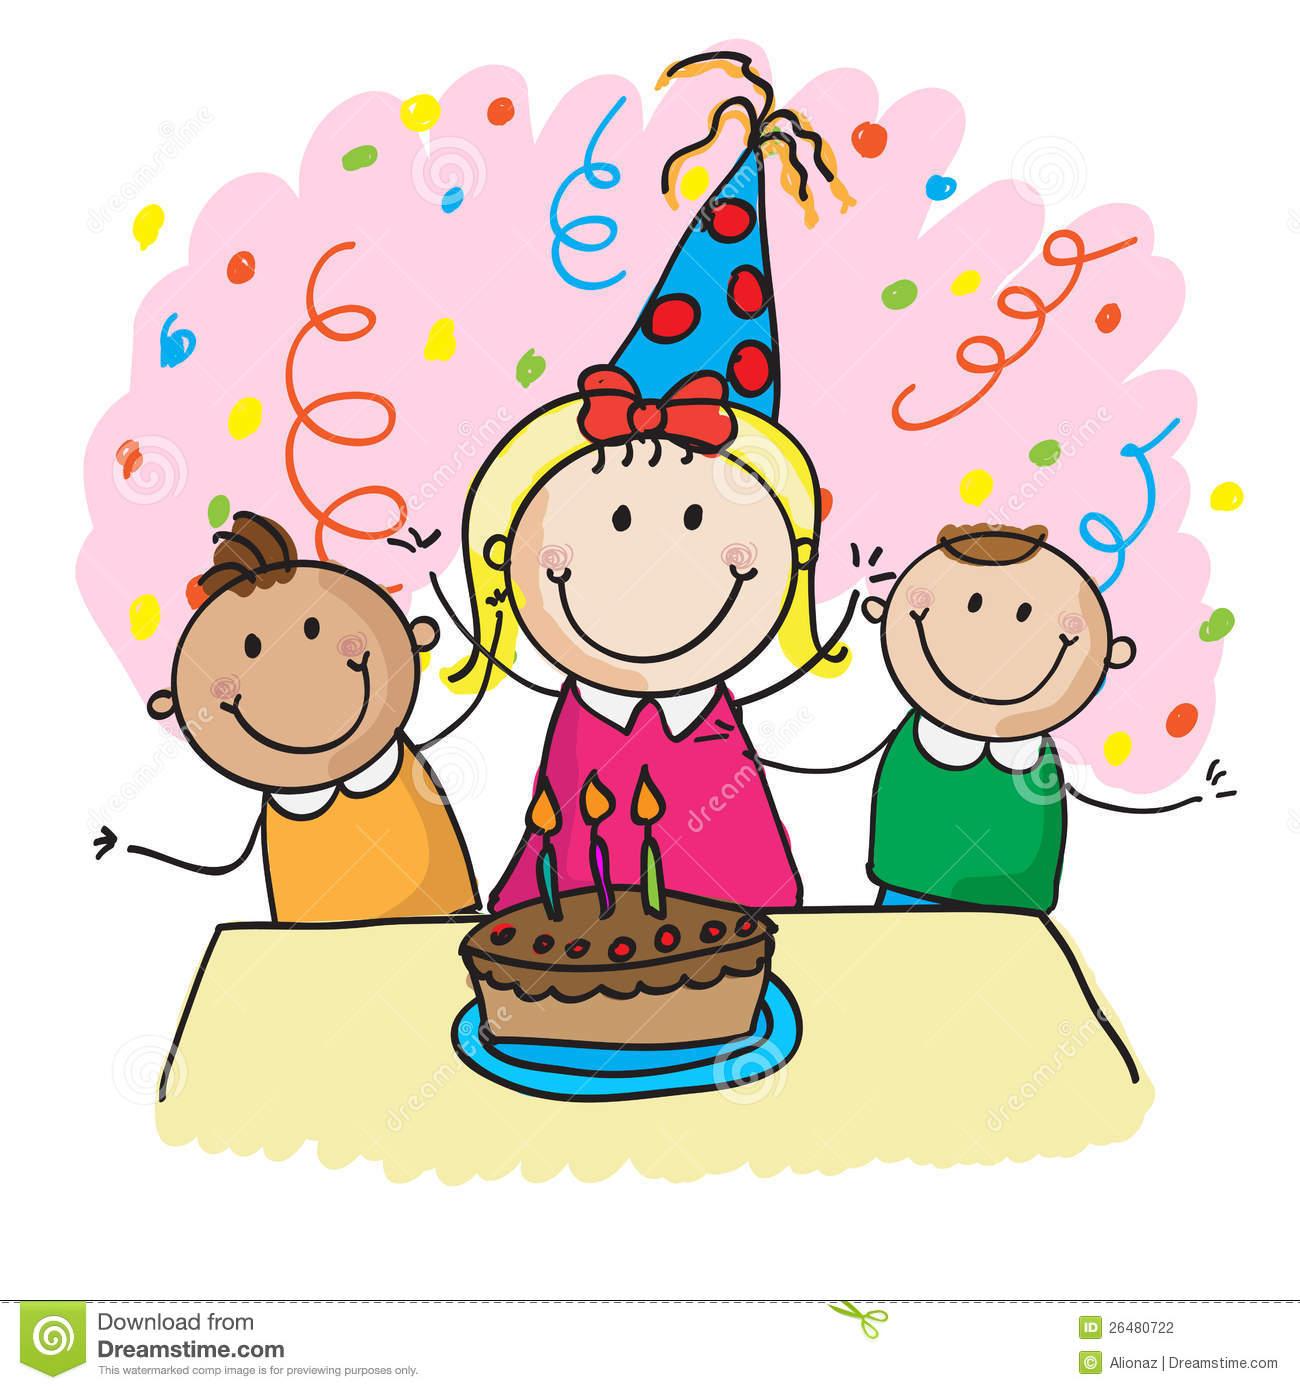 clipart for birthdays free ; free-clipart-for-birthdays-celebration-birthday-celebration-clipart-1